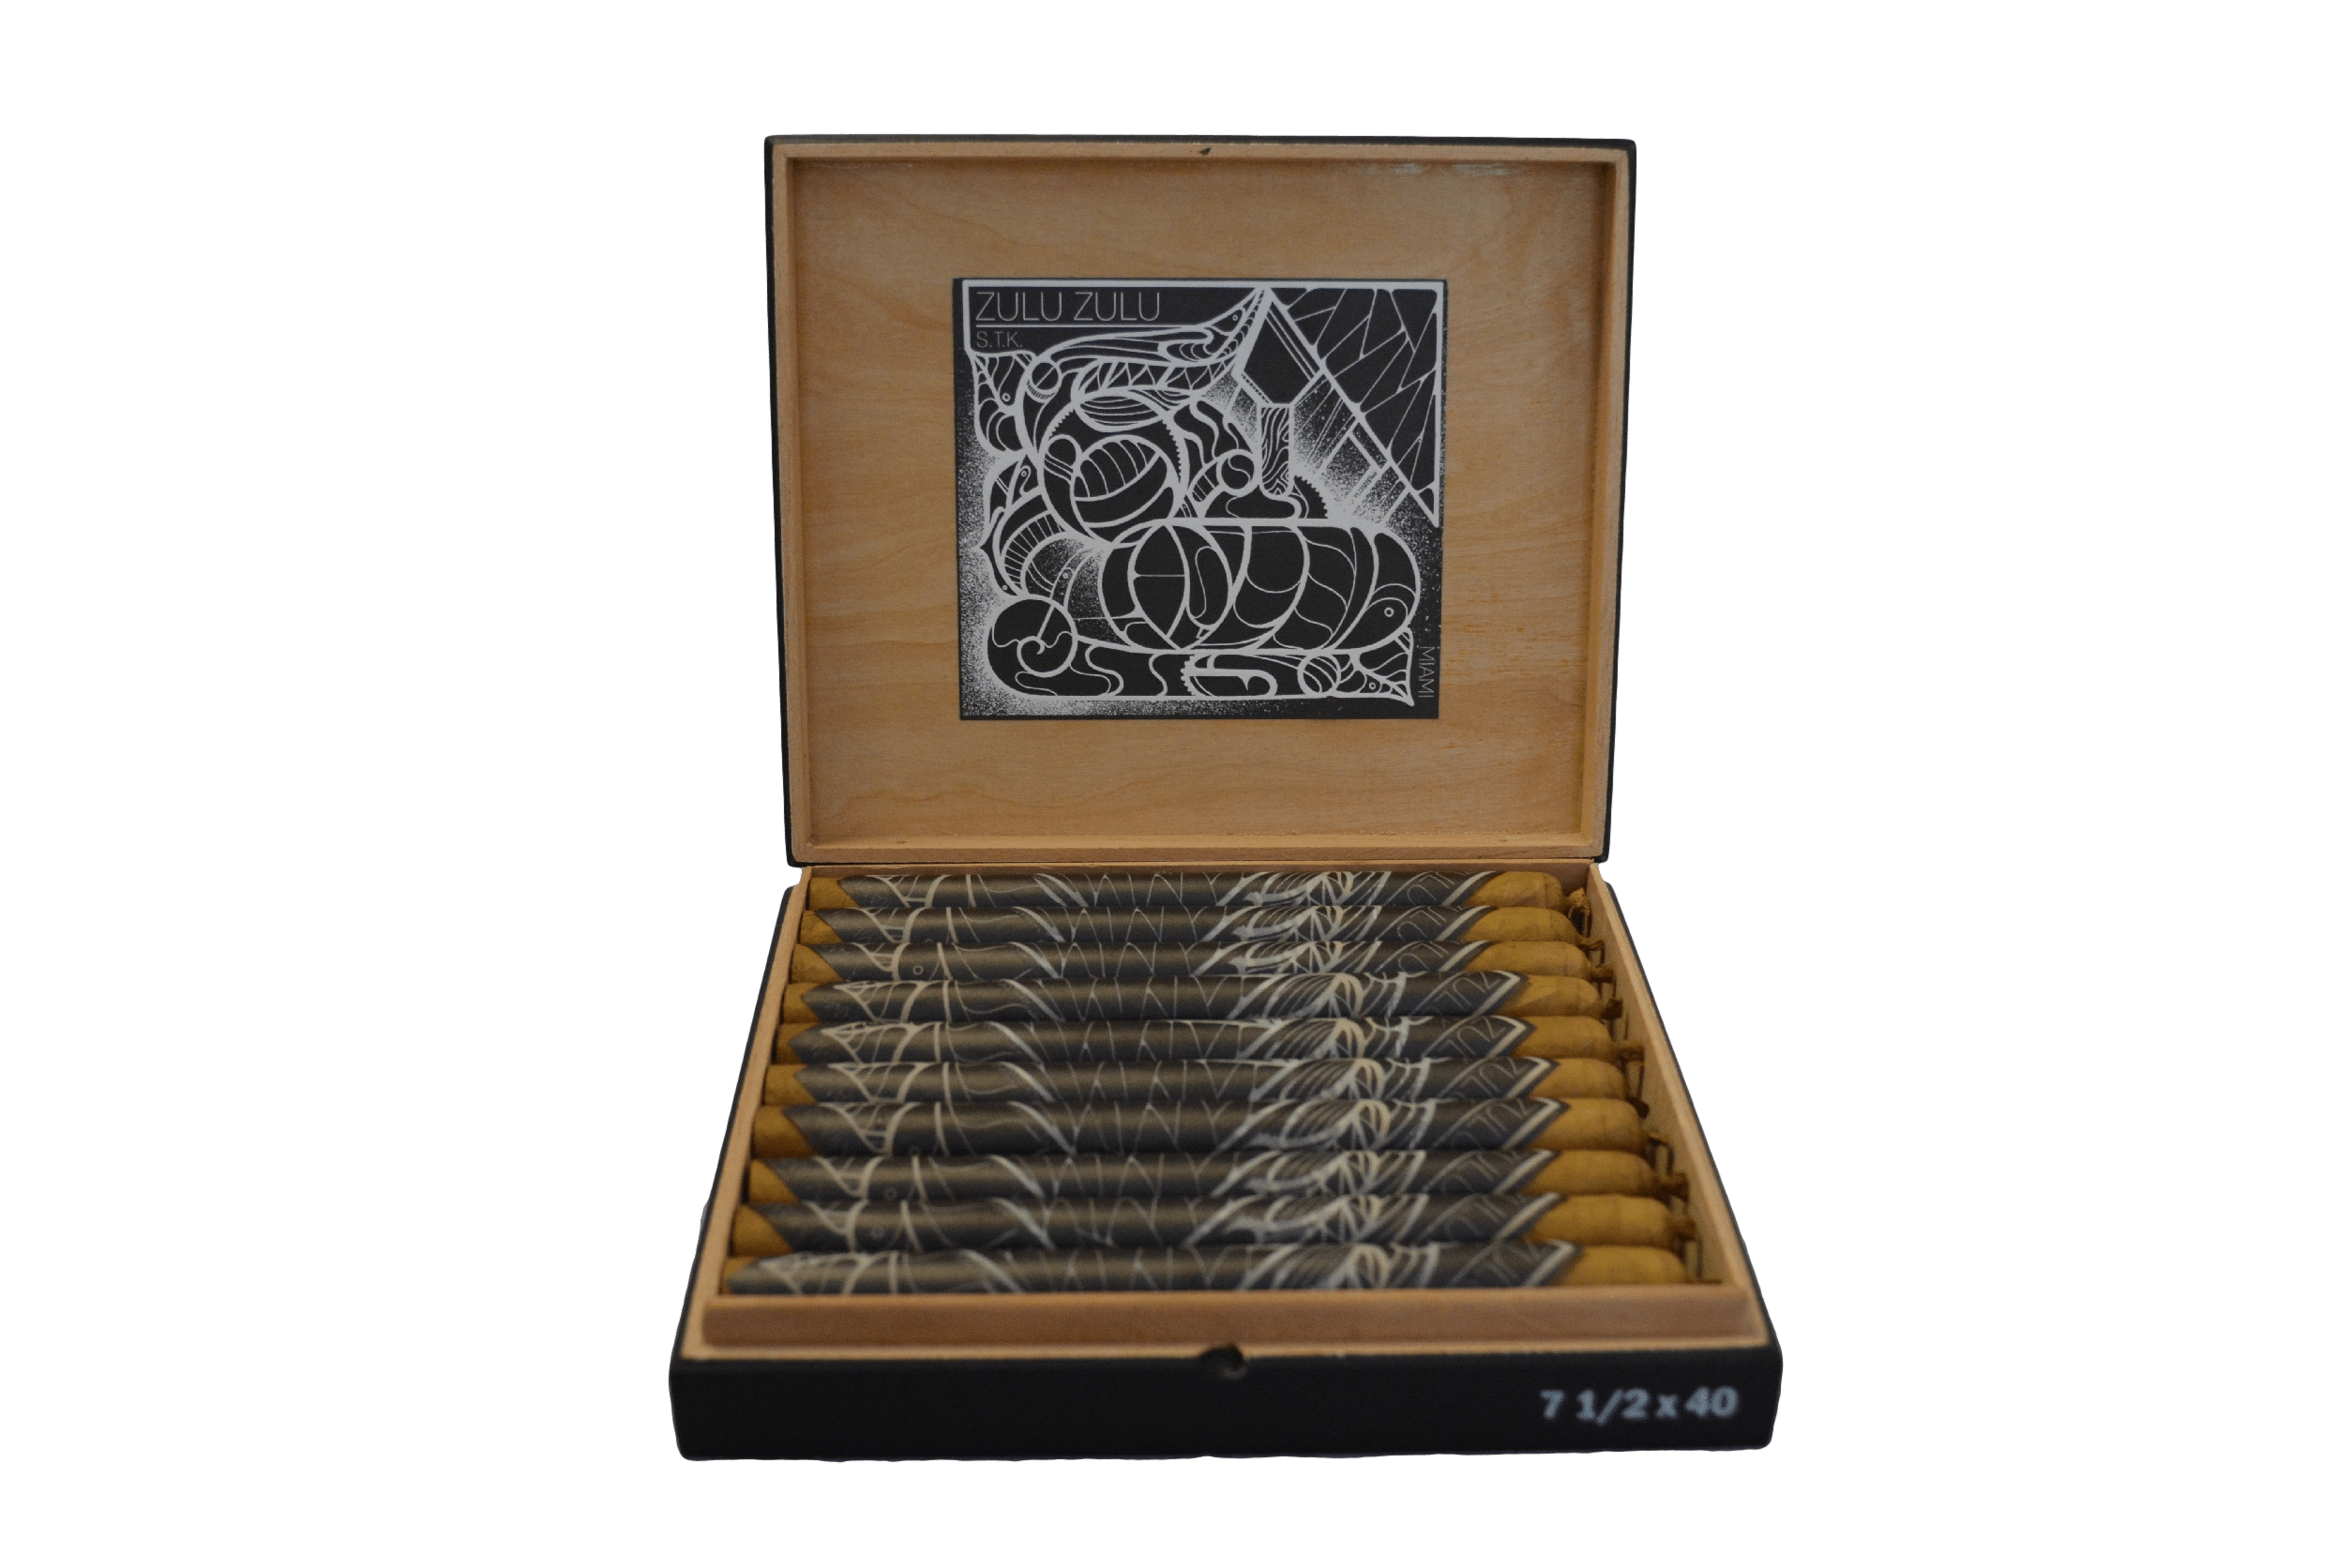 Cigar News: Gran Habano Announces The Official Release of George Rico S.T.K Zulu Zulu Mas Paz Edition